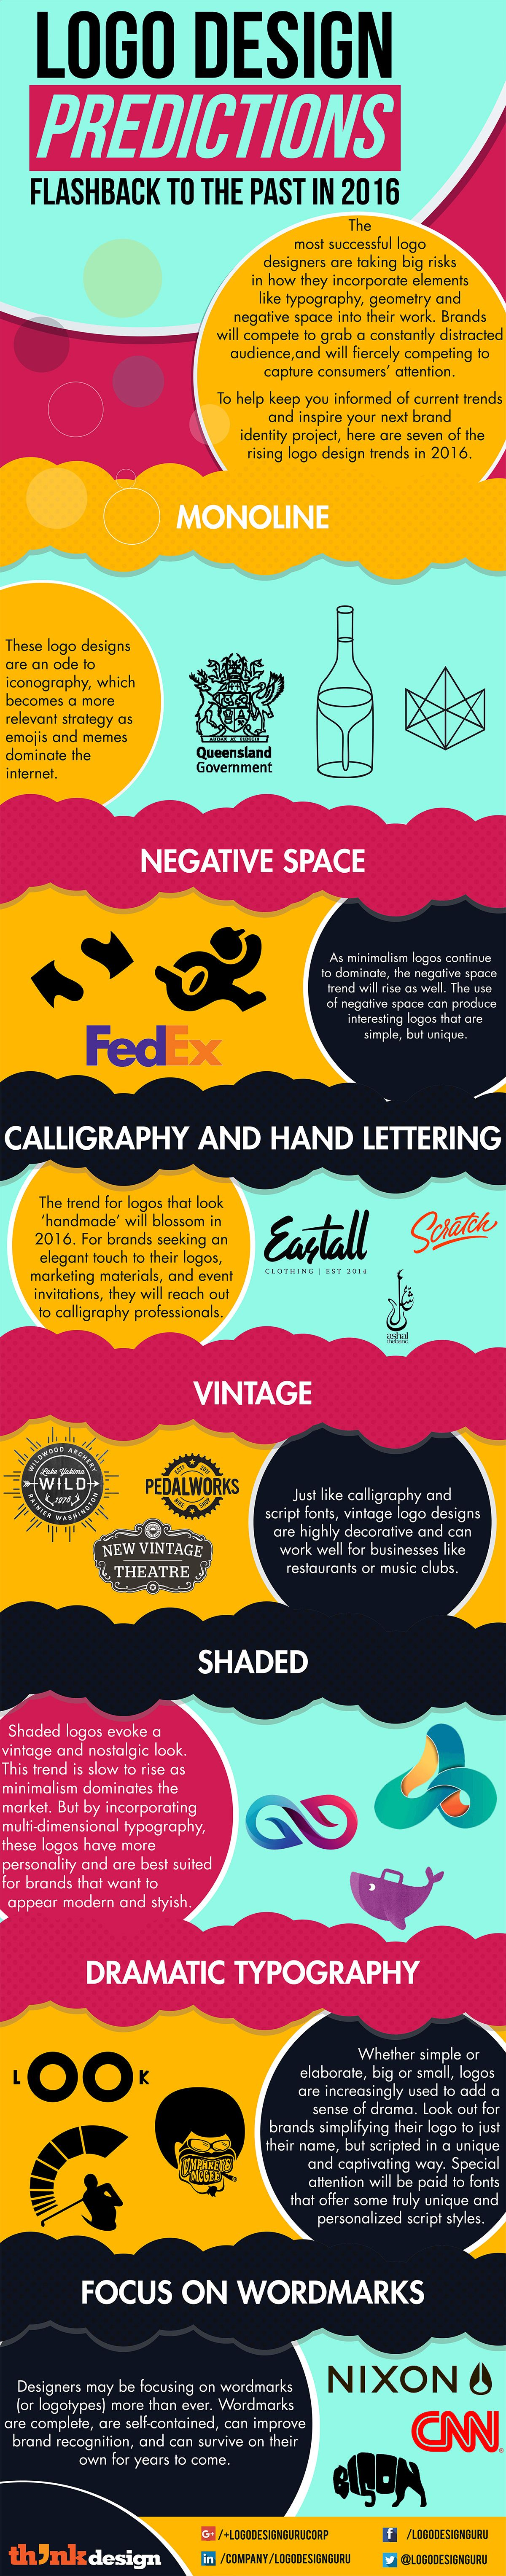 Poster design trends - 2016 Logo Design Trends And Predictions Infographic